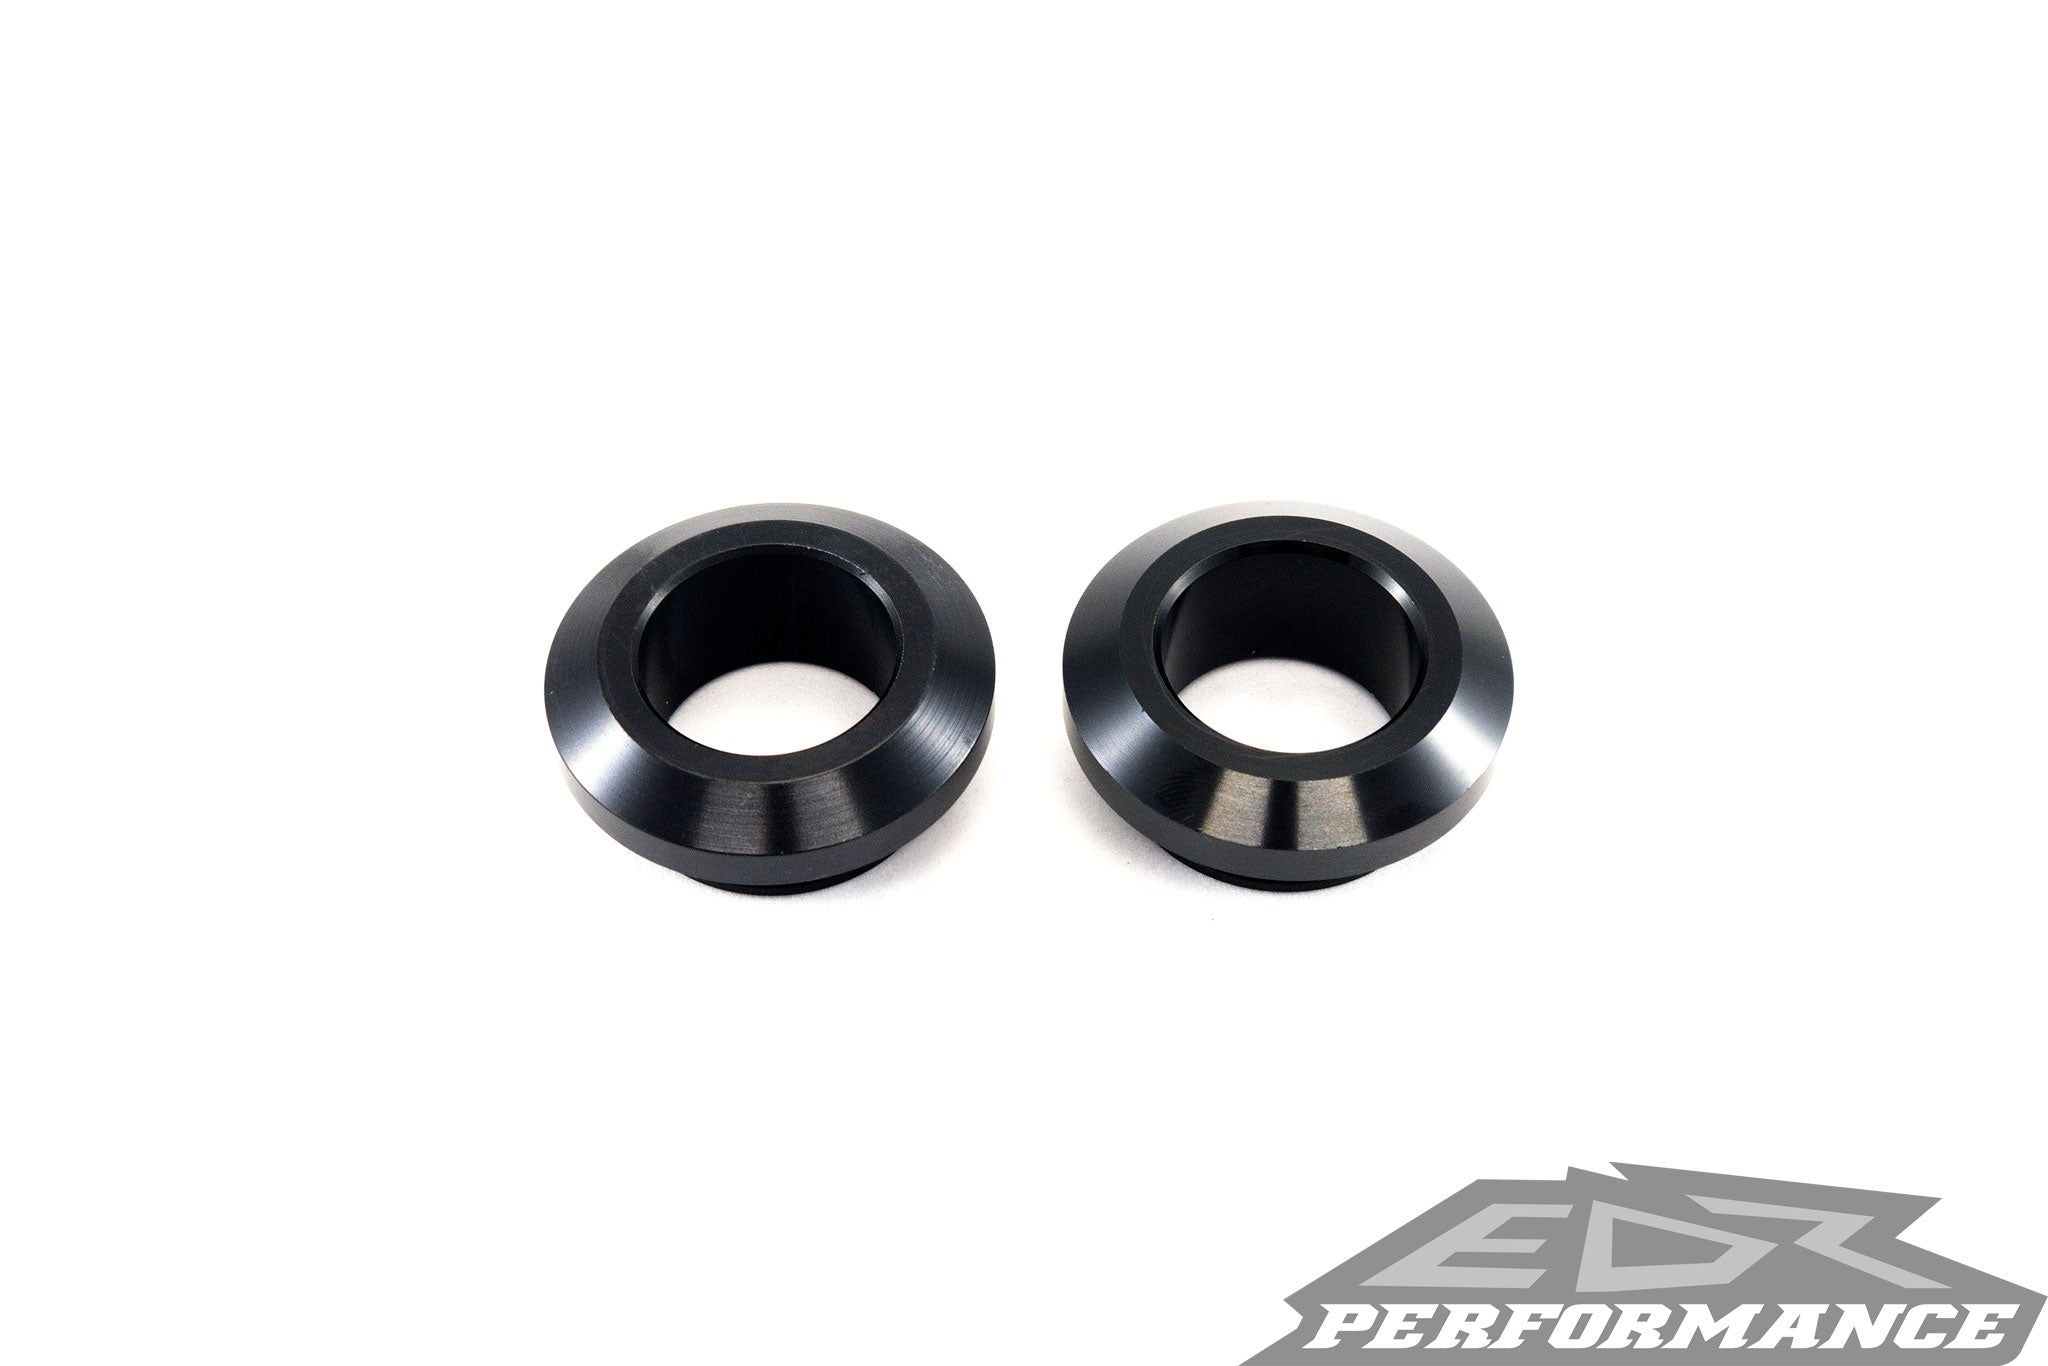 Black Bmw S1000rr Hp4 Captive Wheel Spacers 2012 Motors Auto Parts Accessories